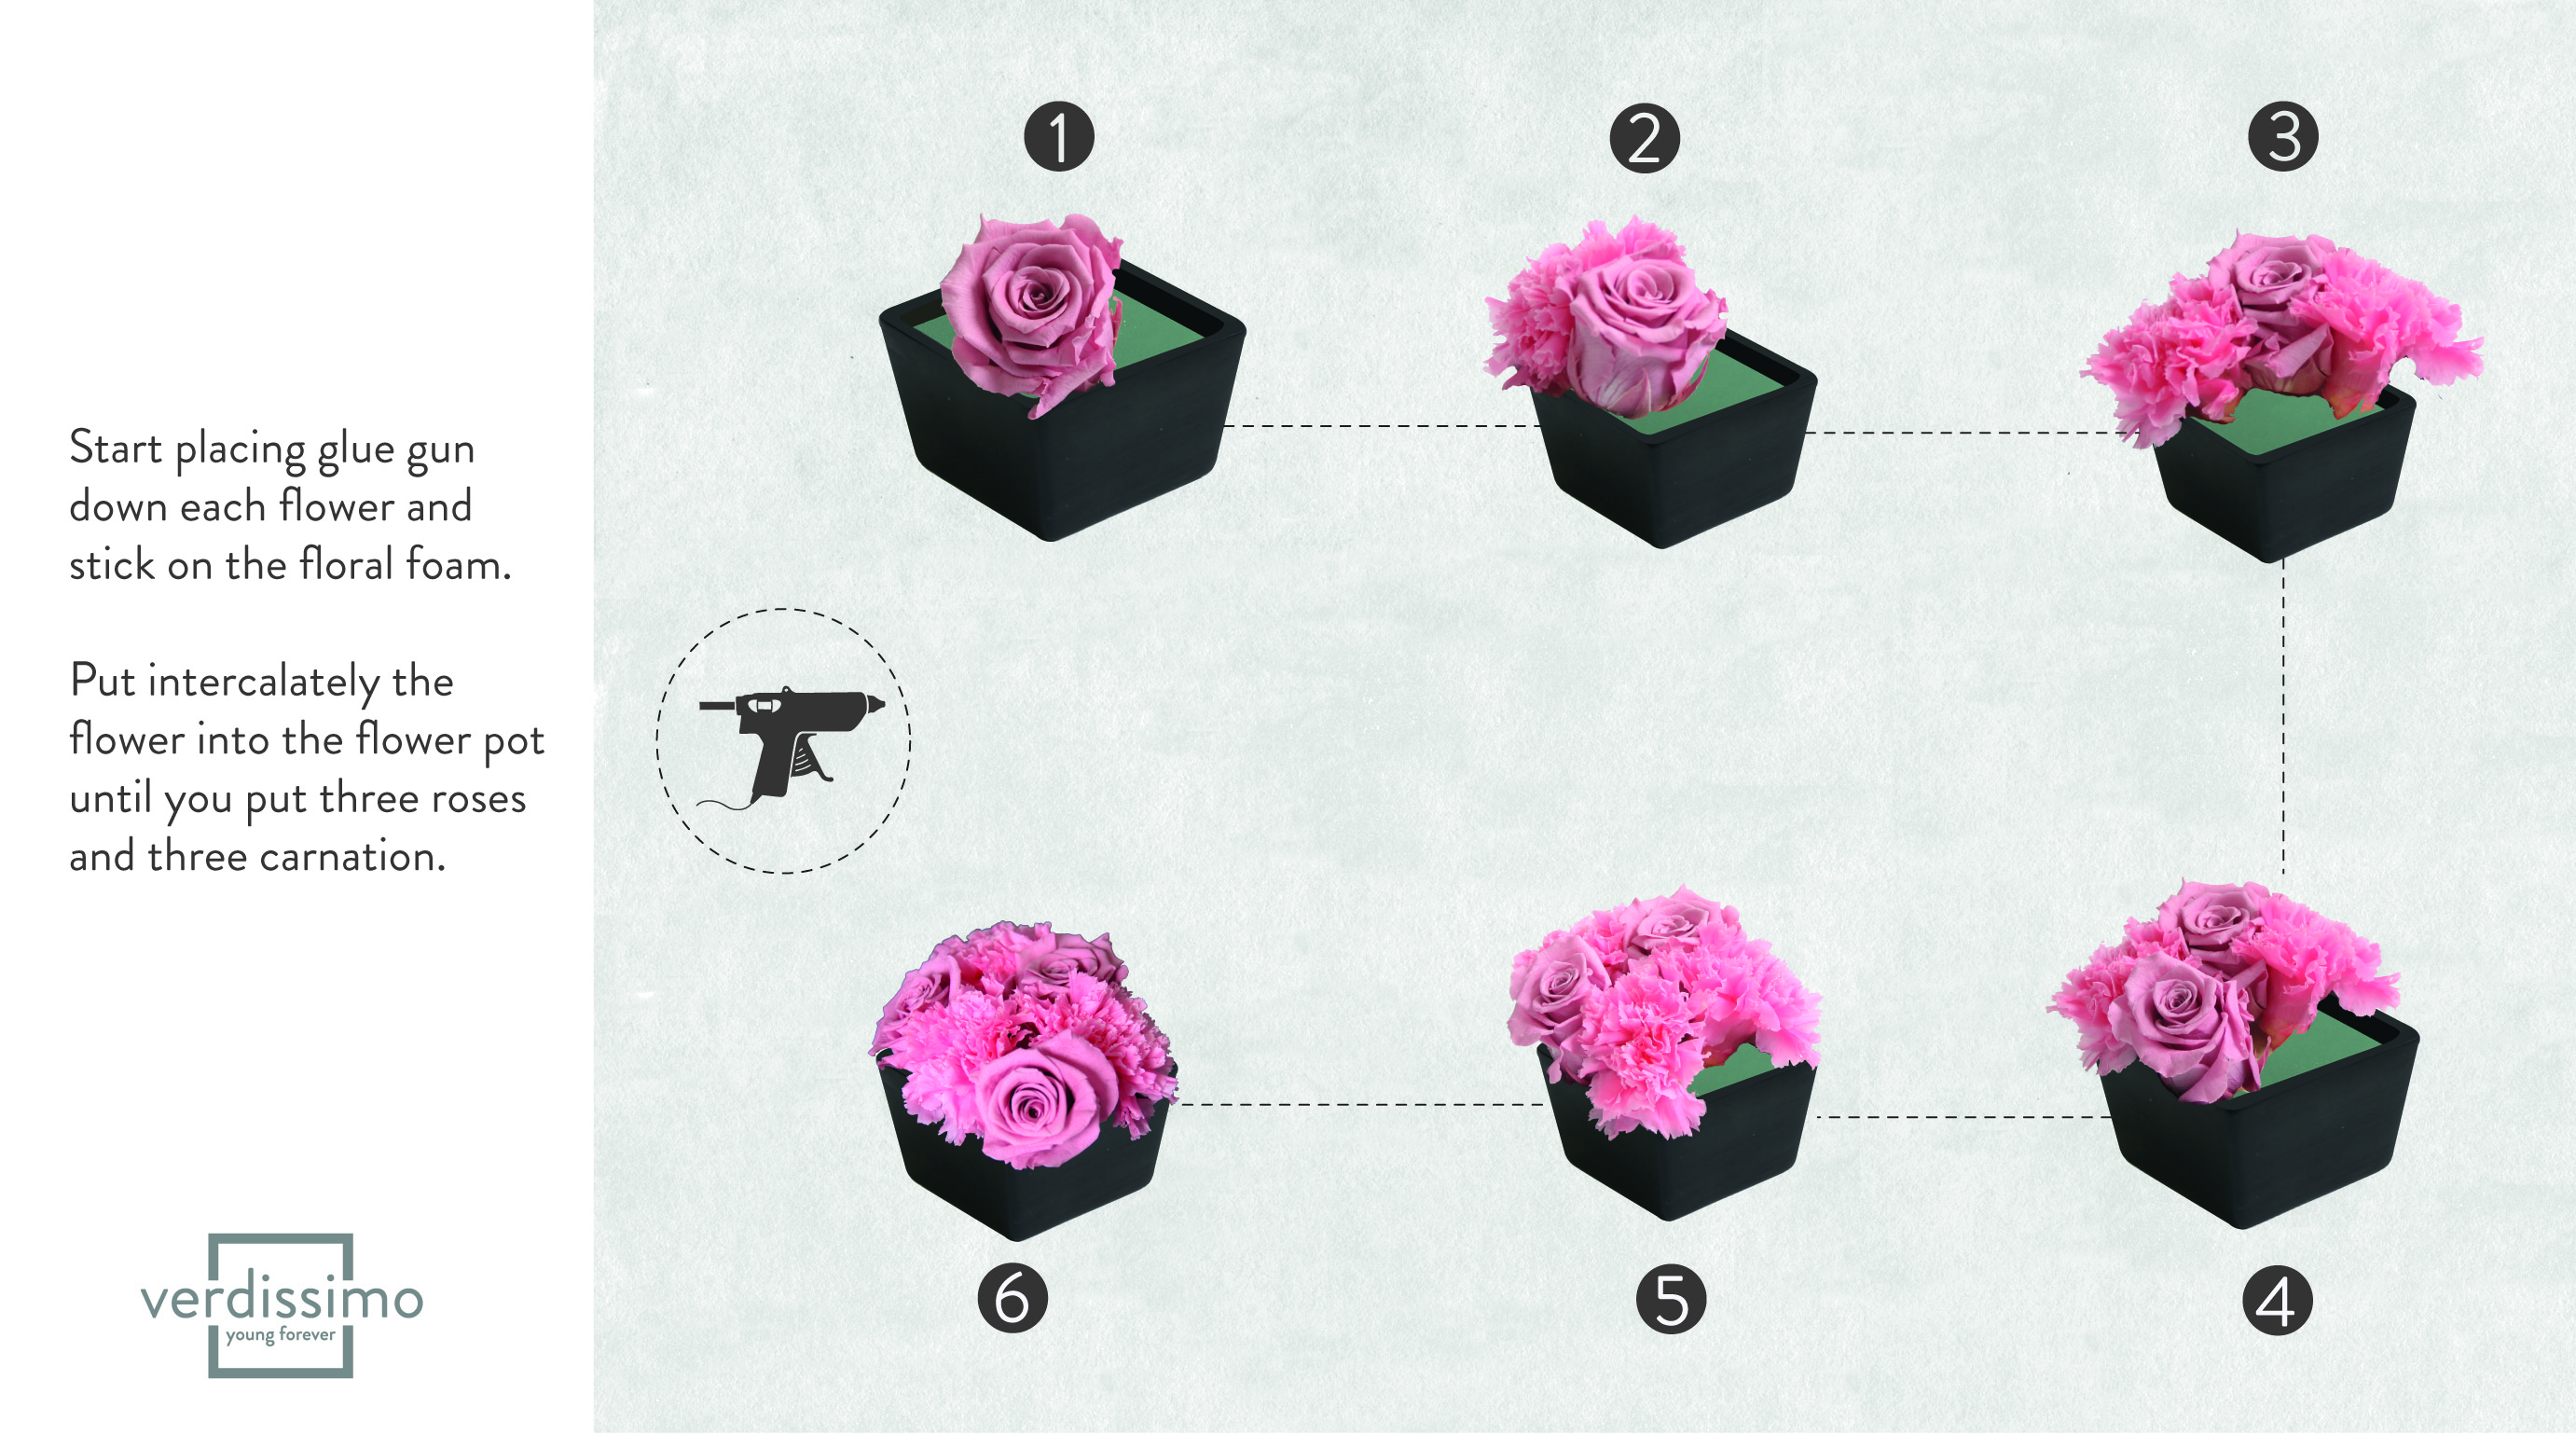 Do it yourself! - Create a floral himmeli to decorate your home